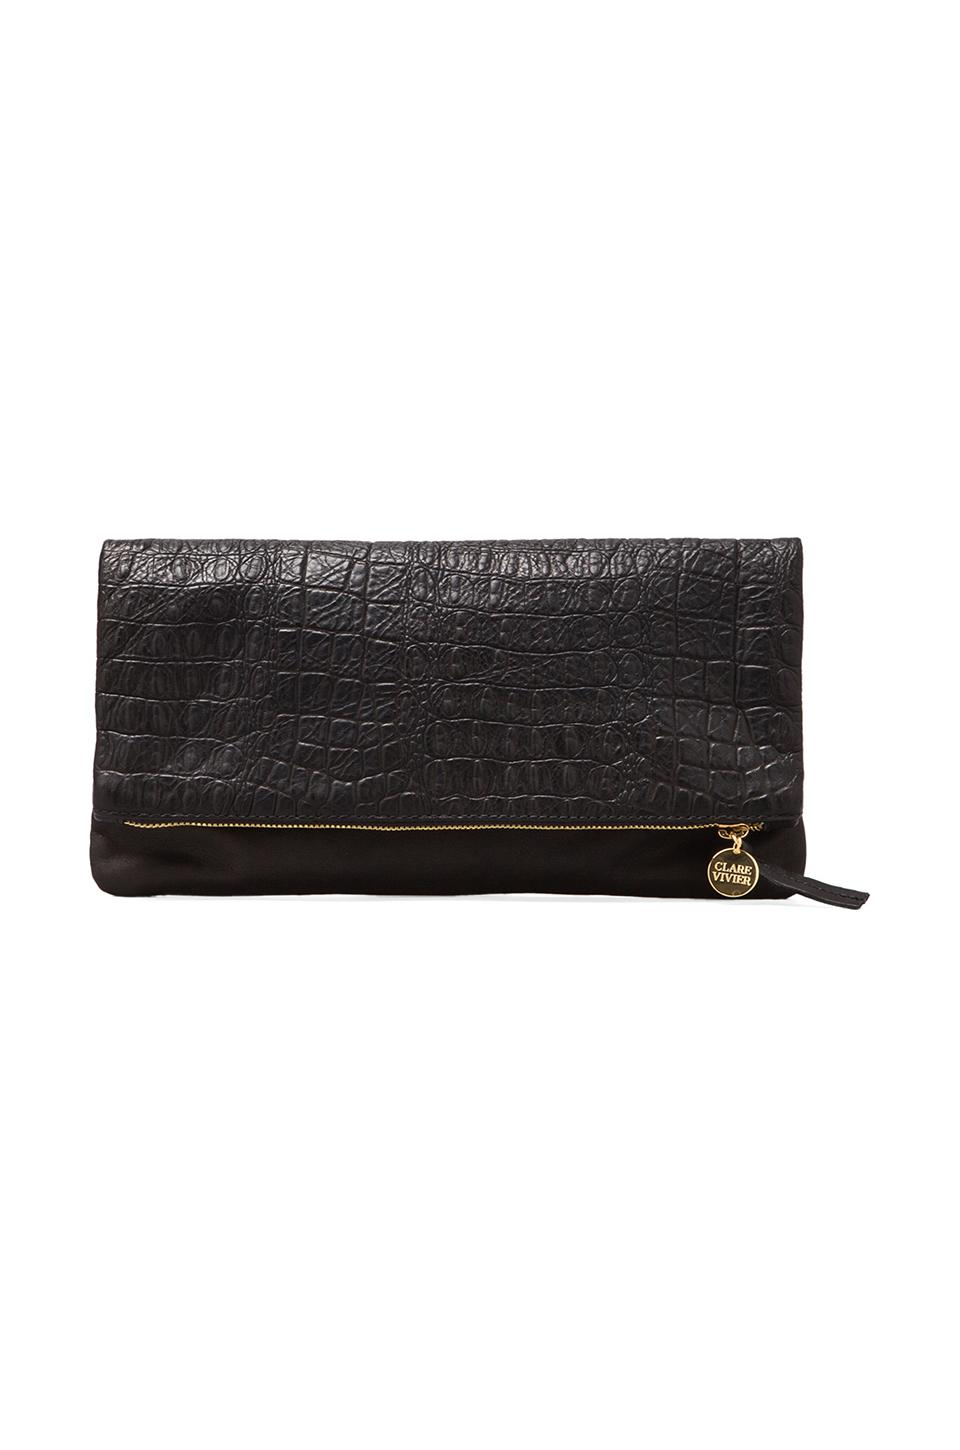 Clare V. Foldover Clutch in Black